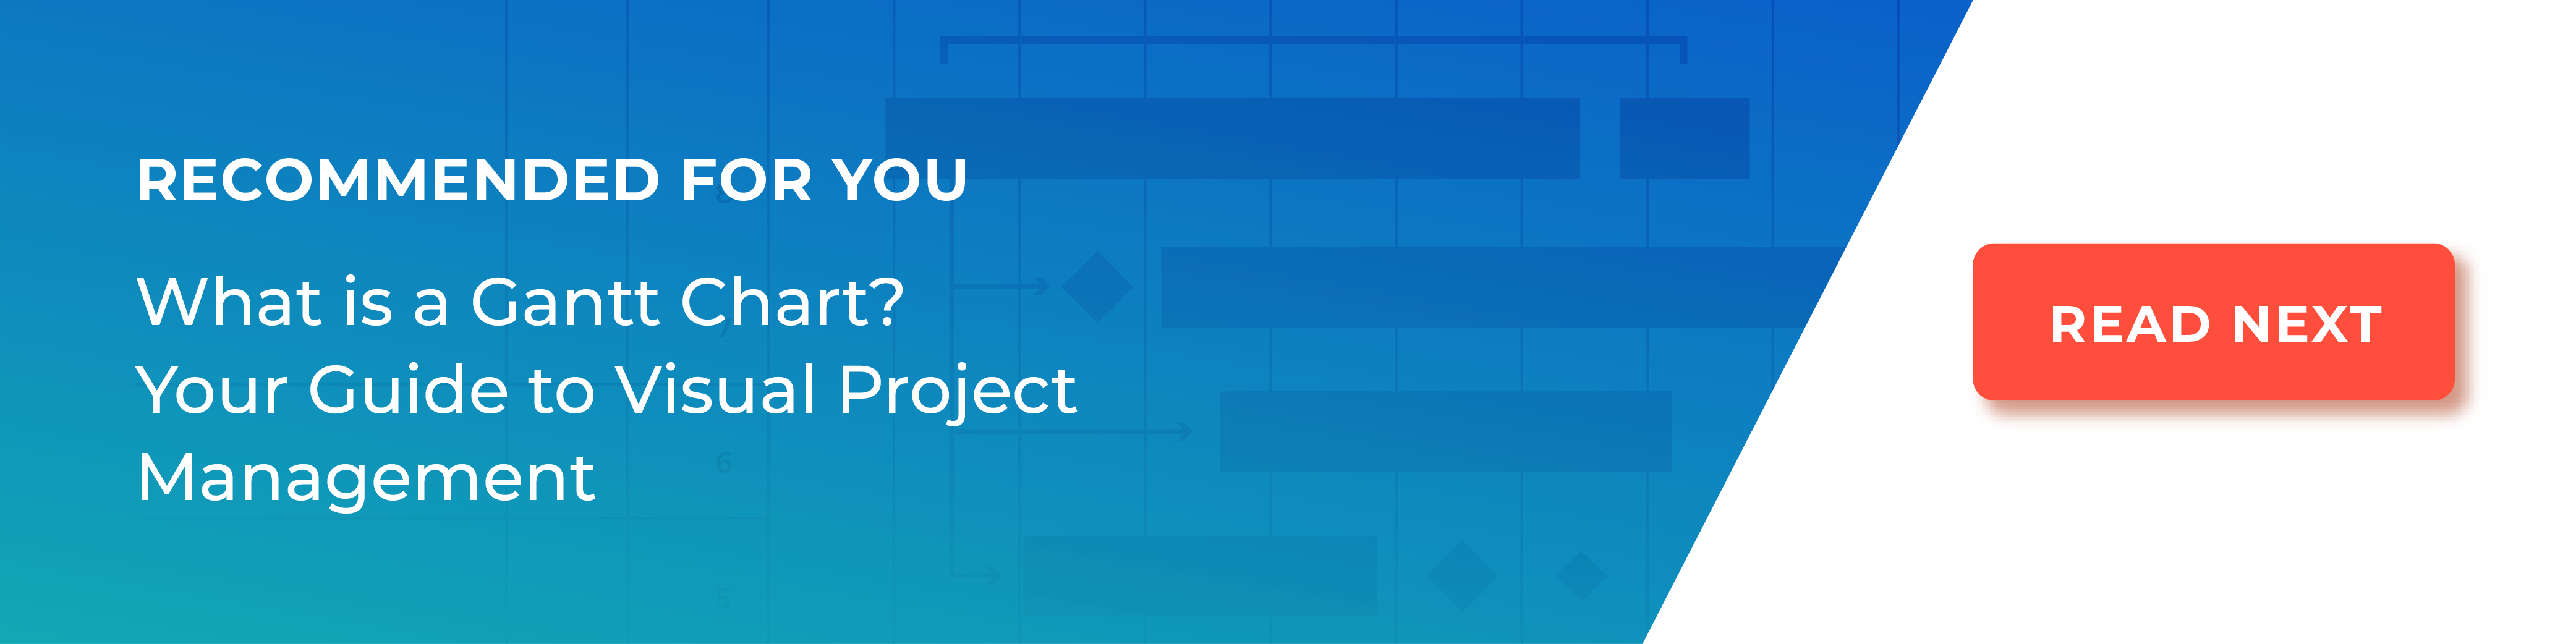 read next - what is a gantt chart - your guide to visual project management